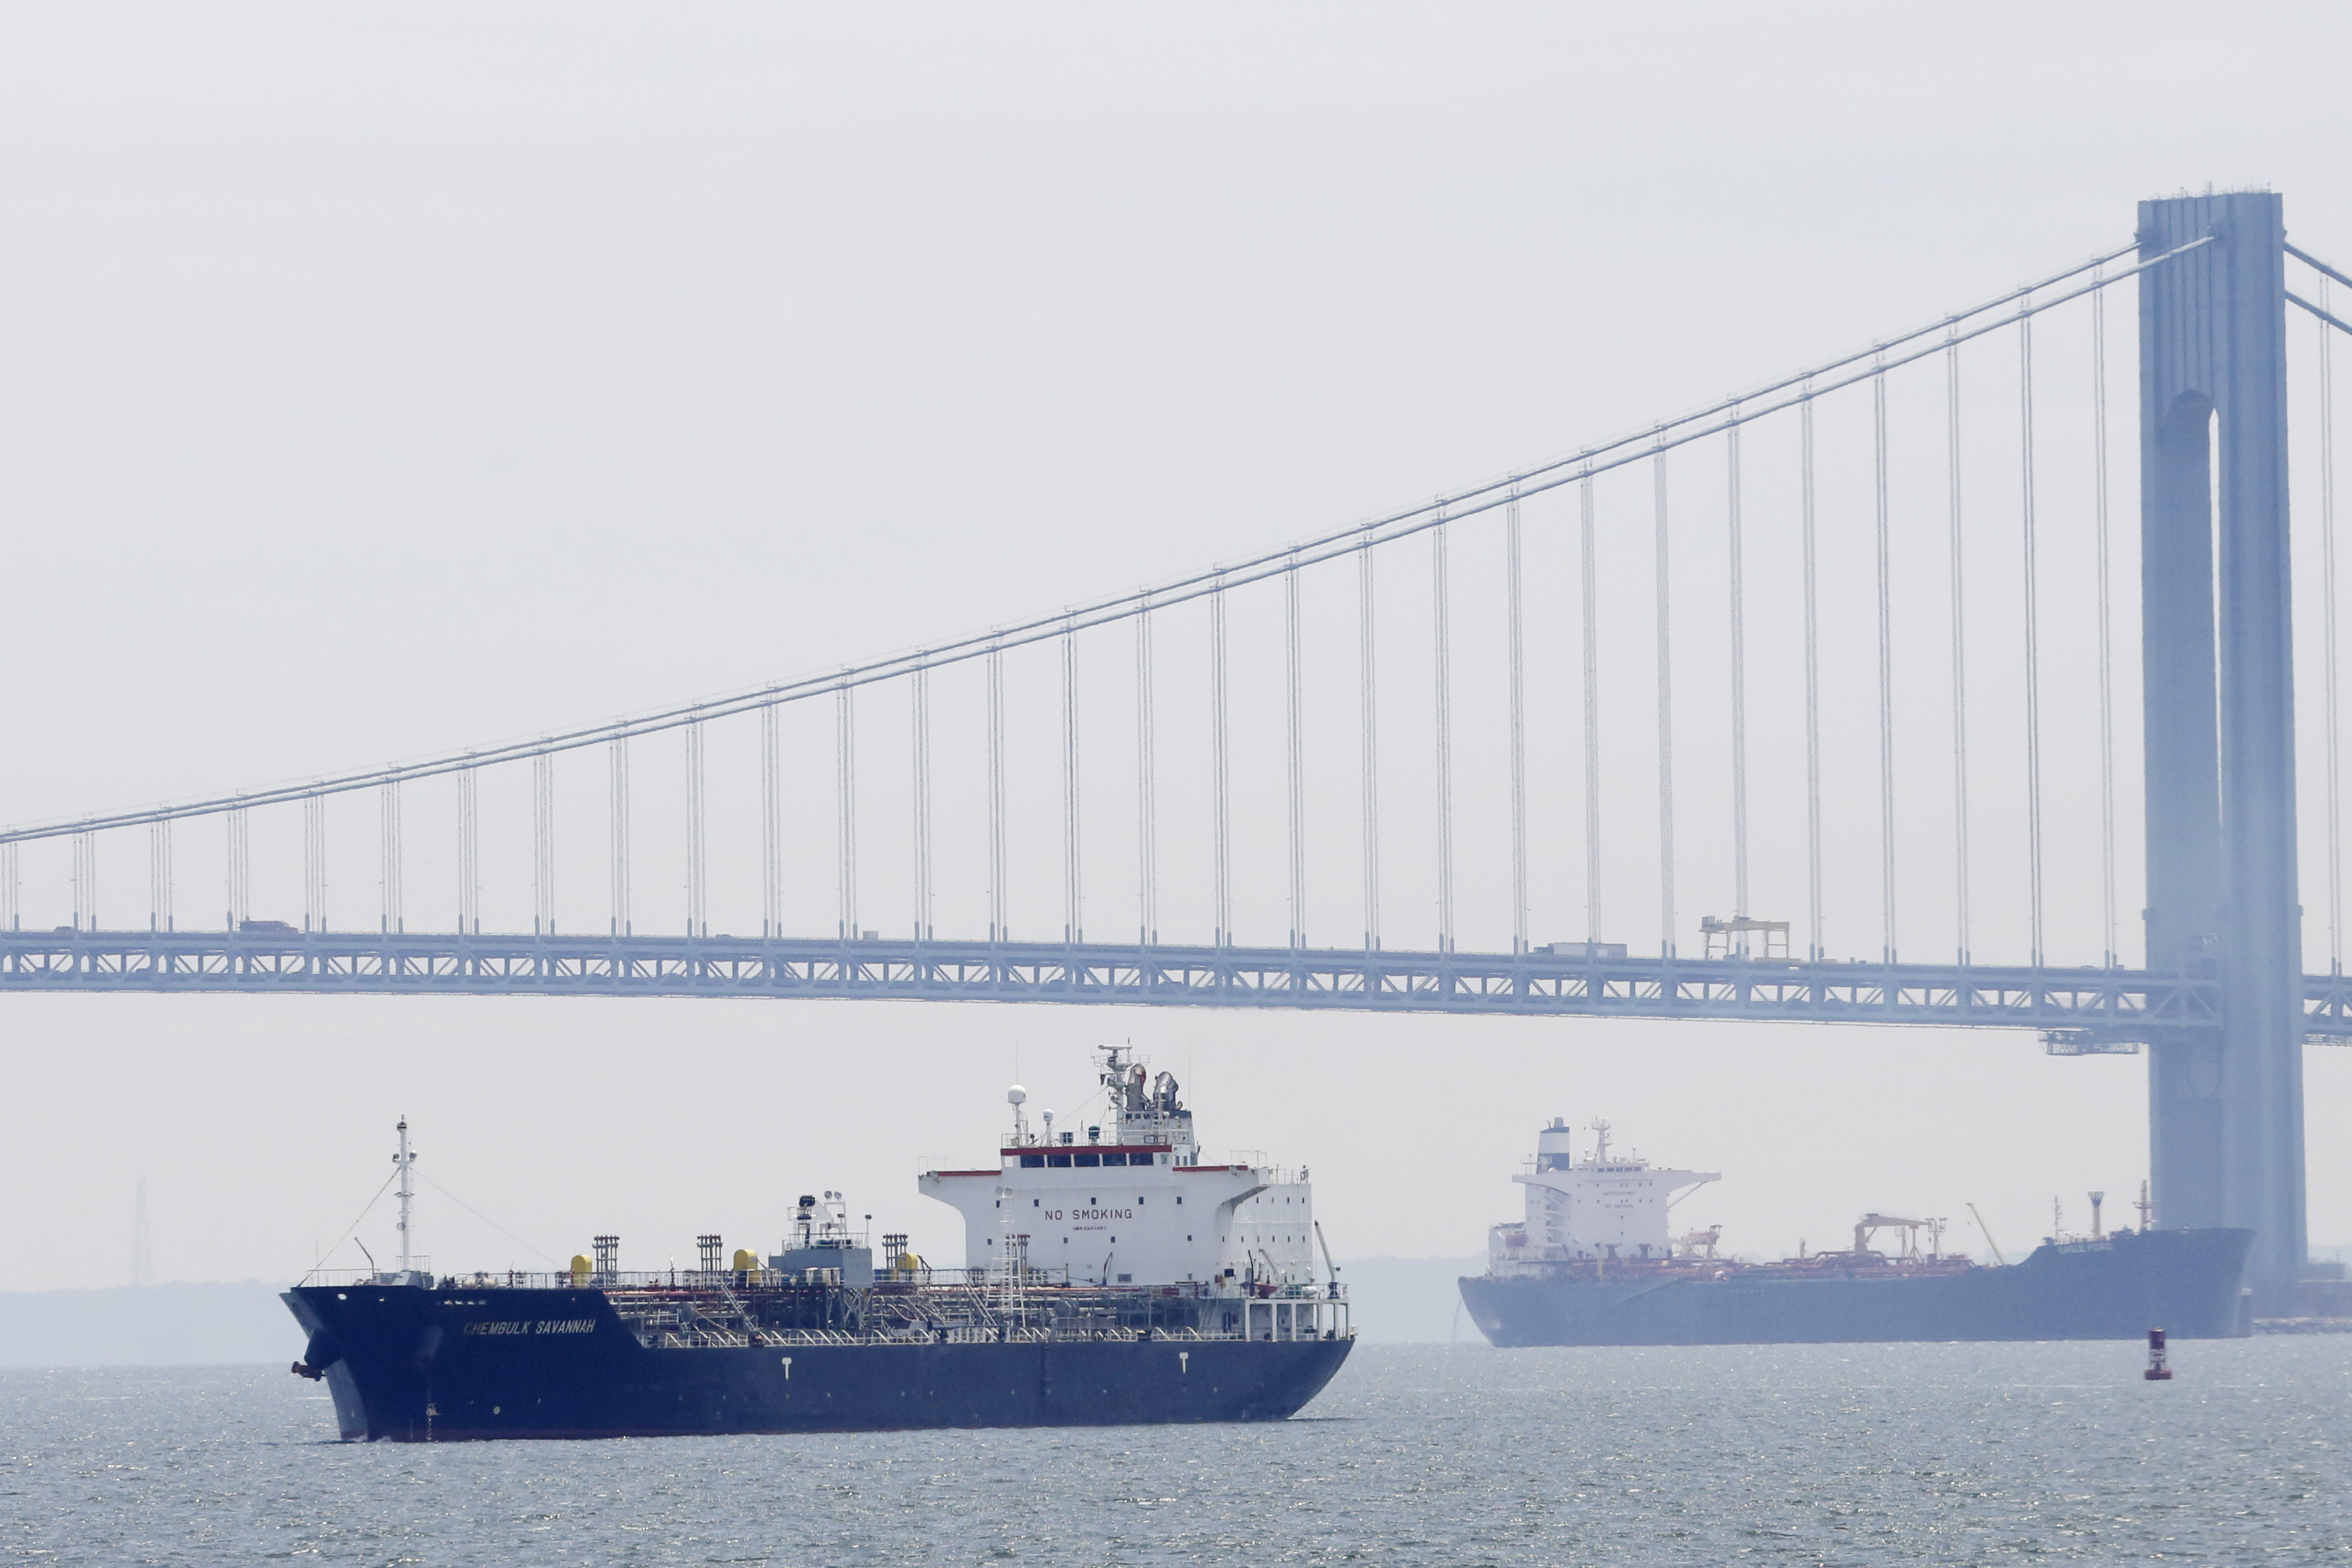 US trade deficit drops sharply in April